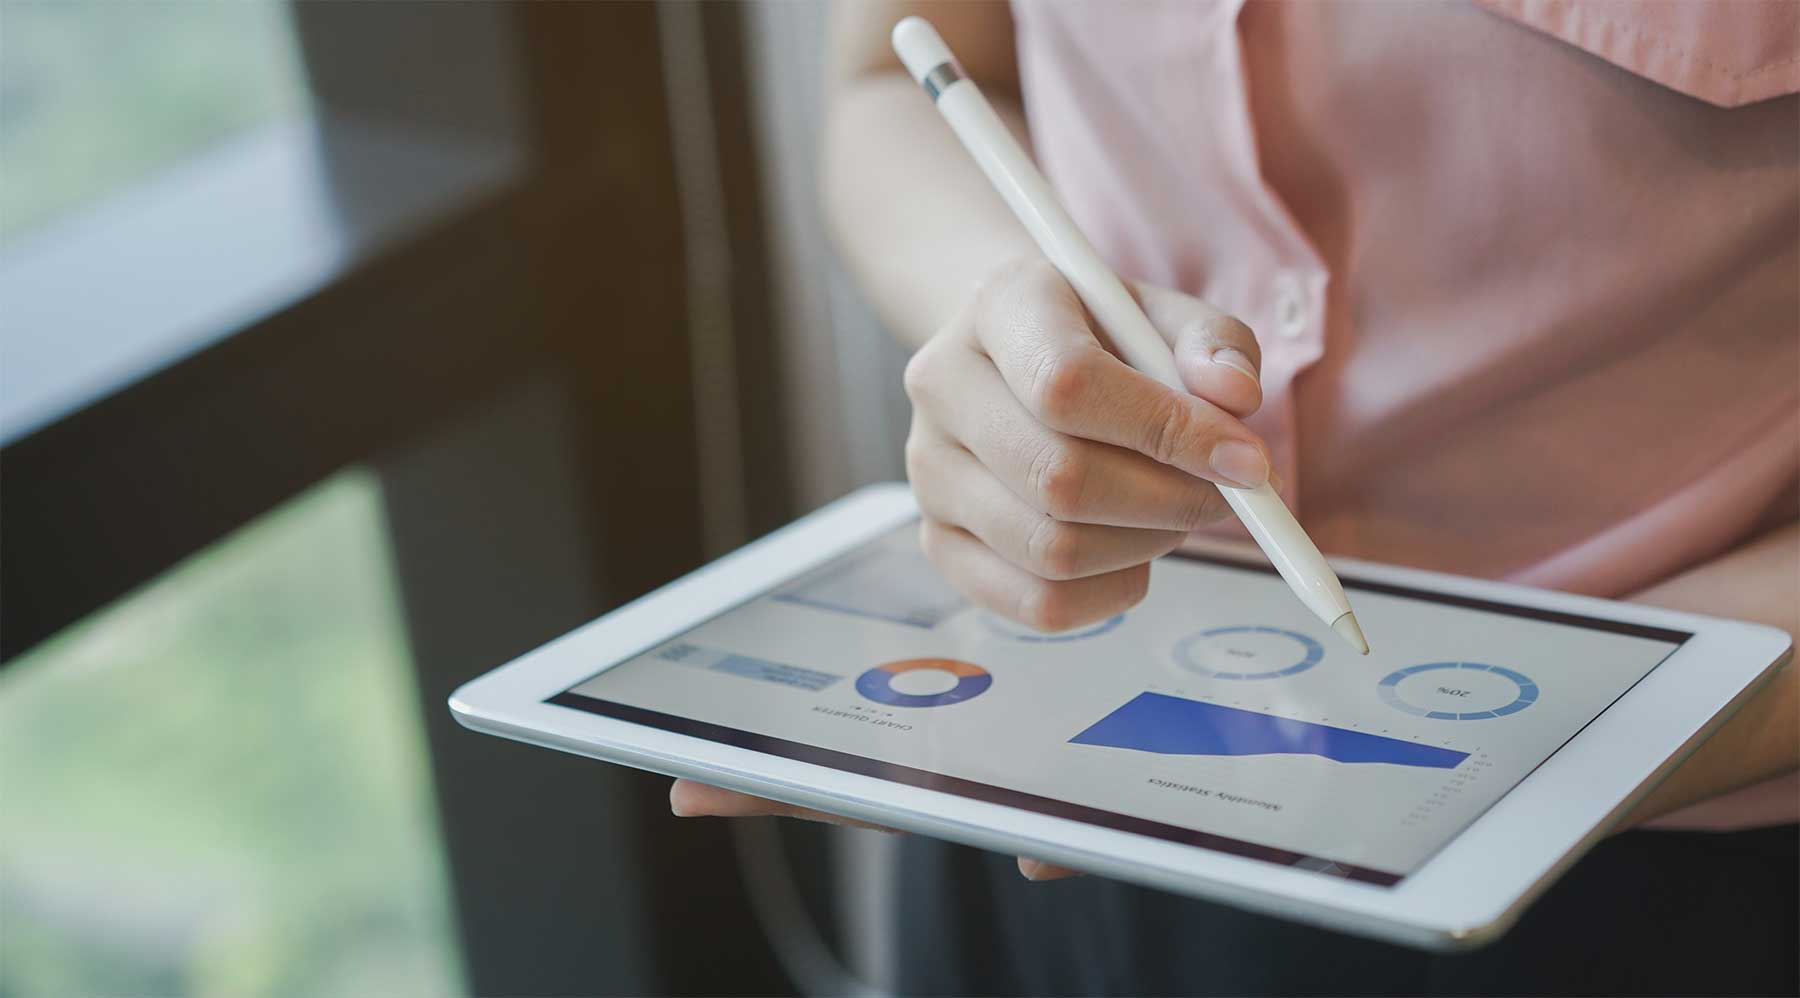 person using a tablet and stylus to monitor analytics